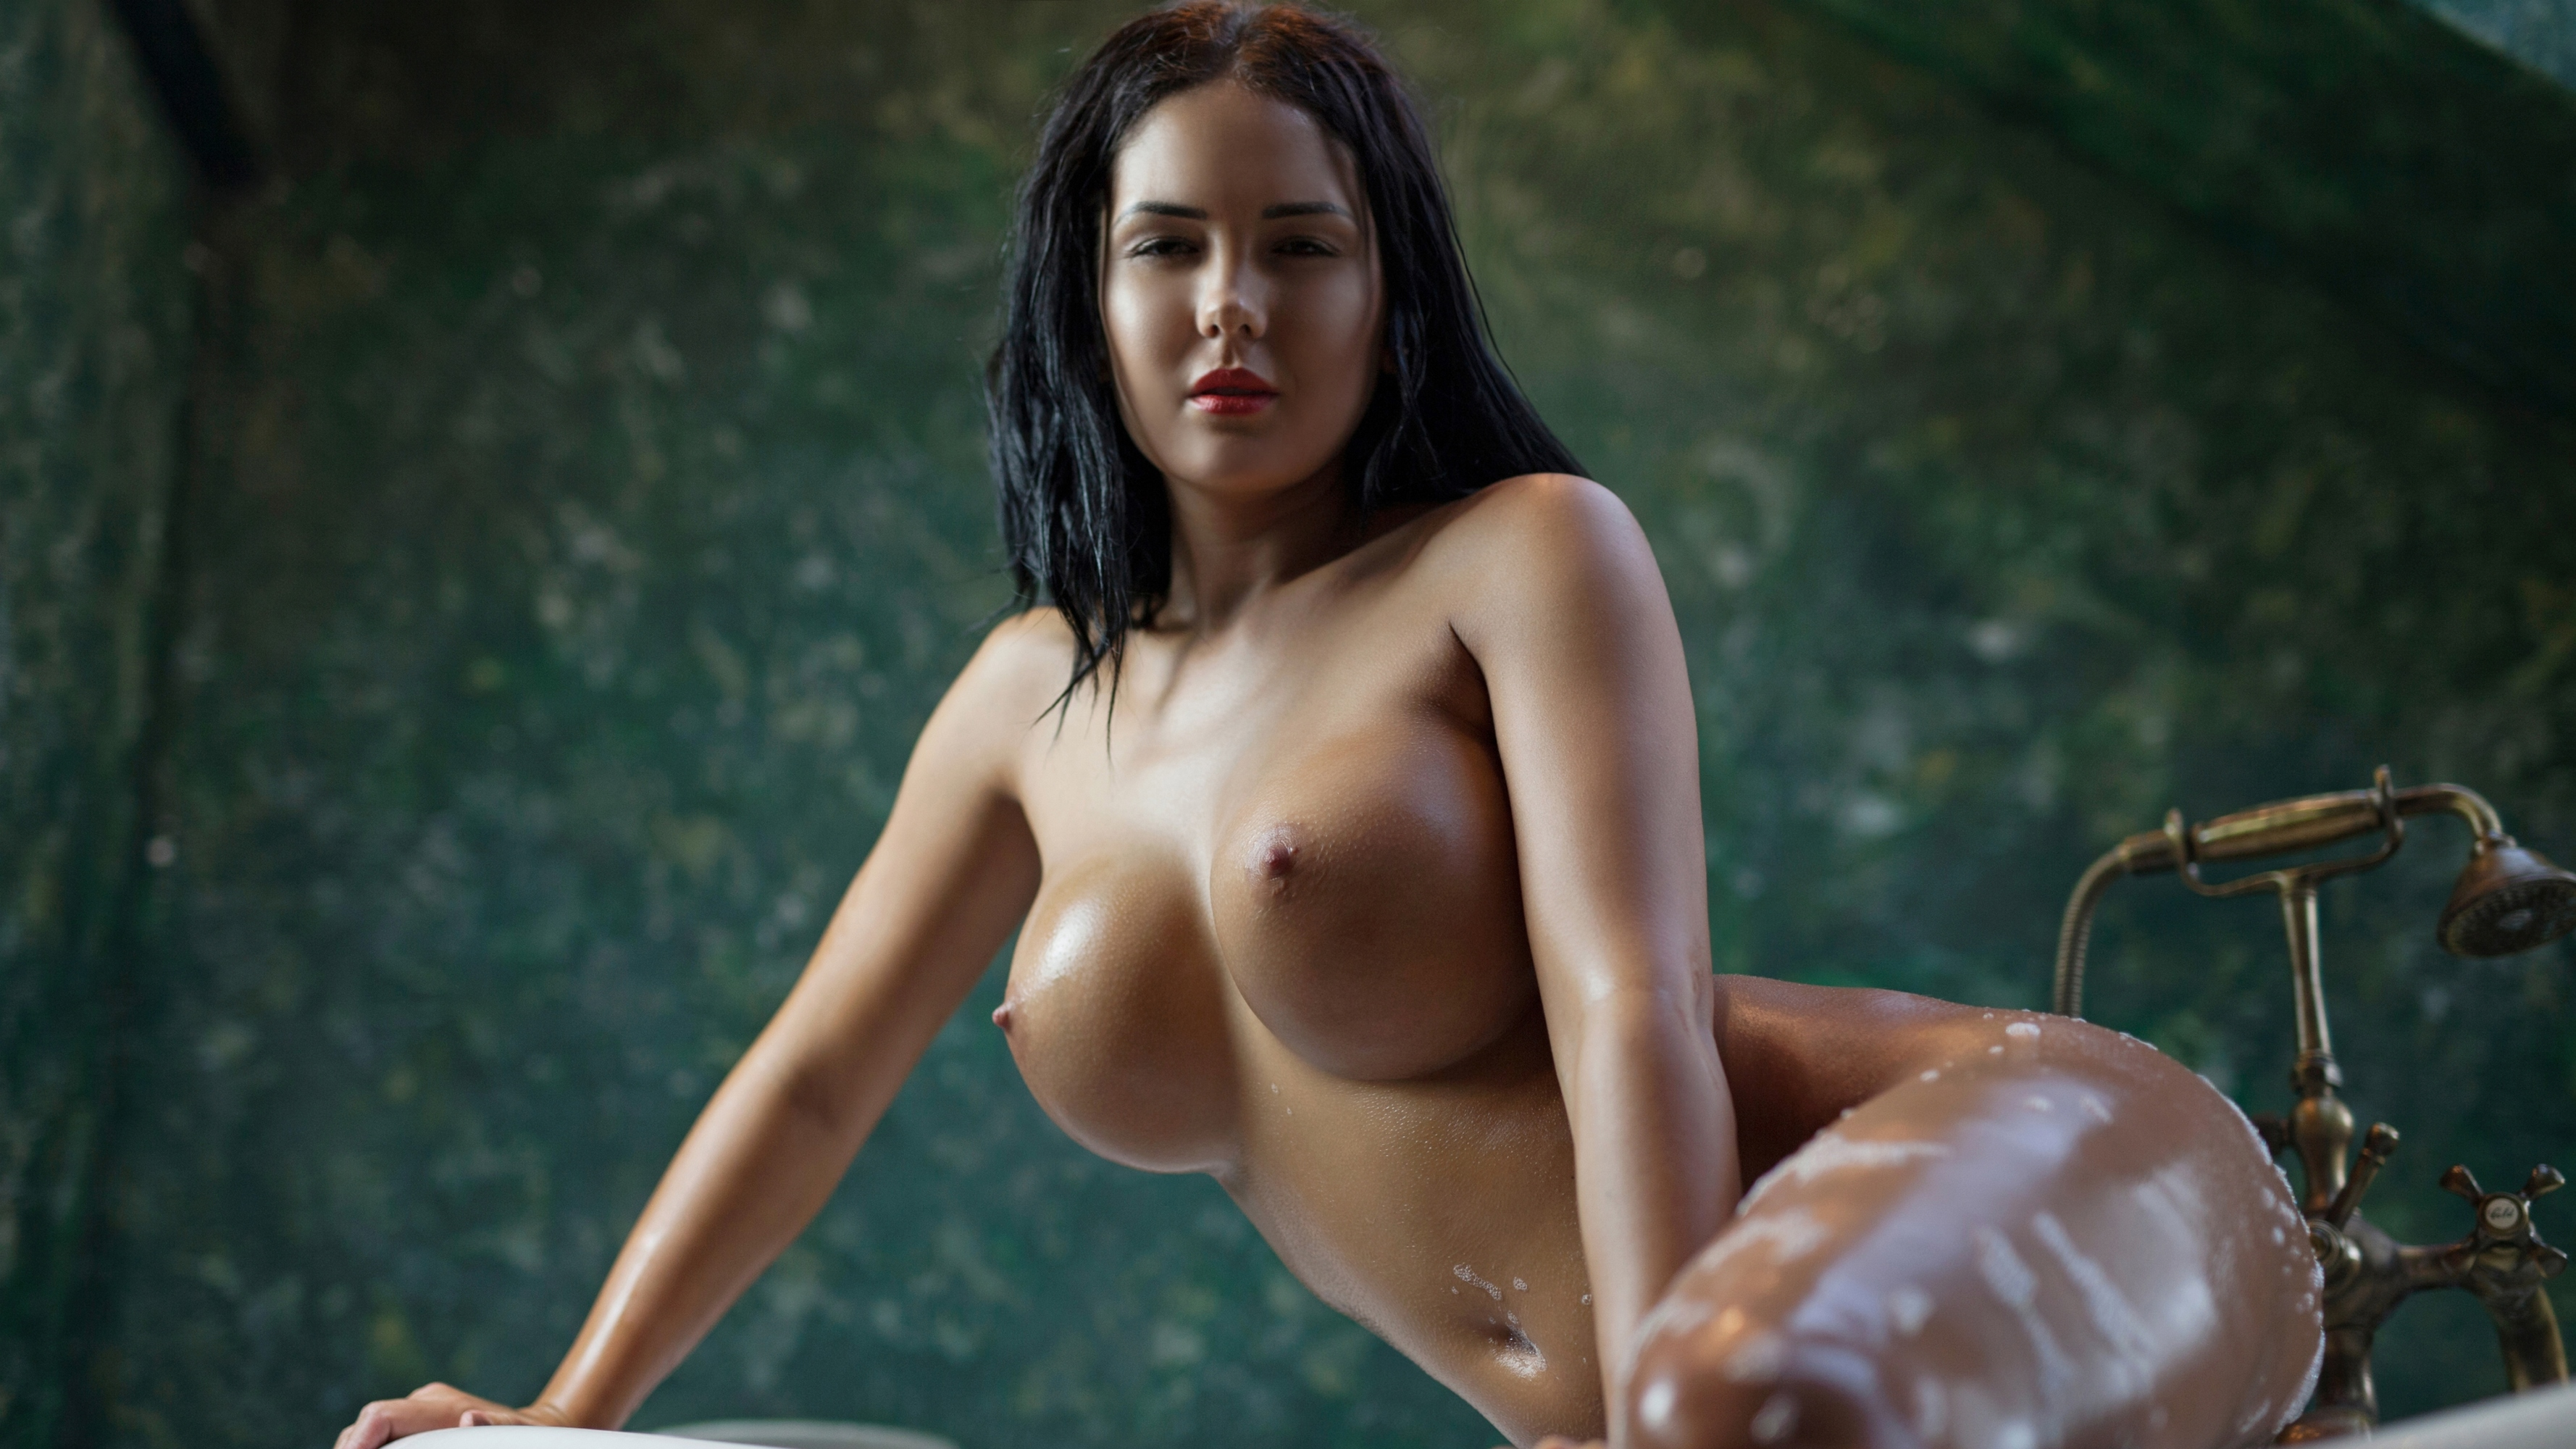 colombian women boobs naked